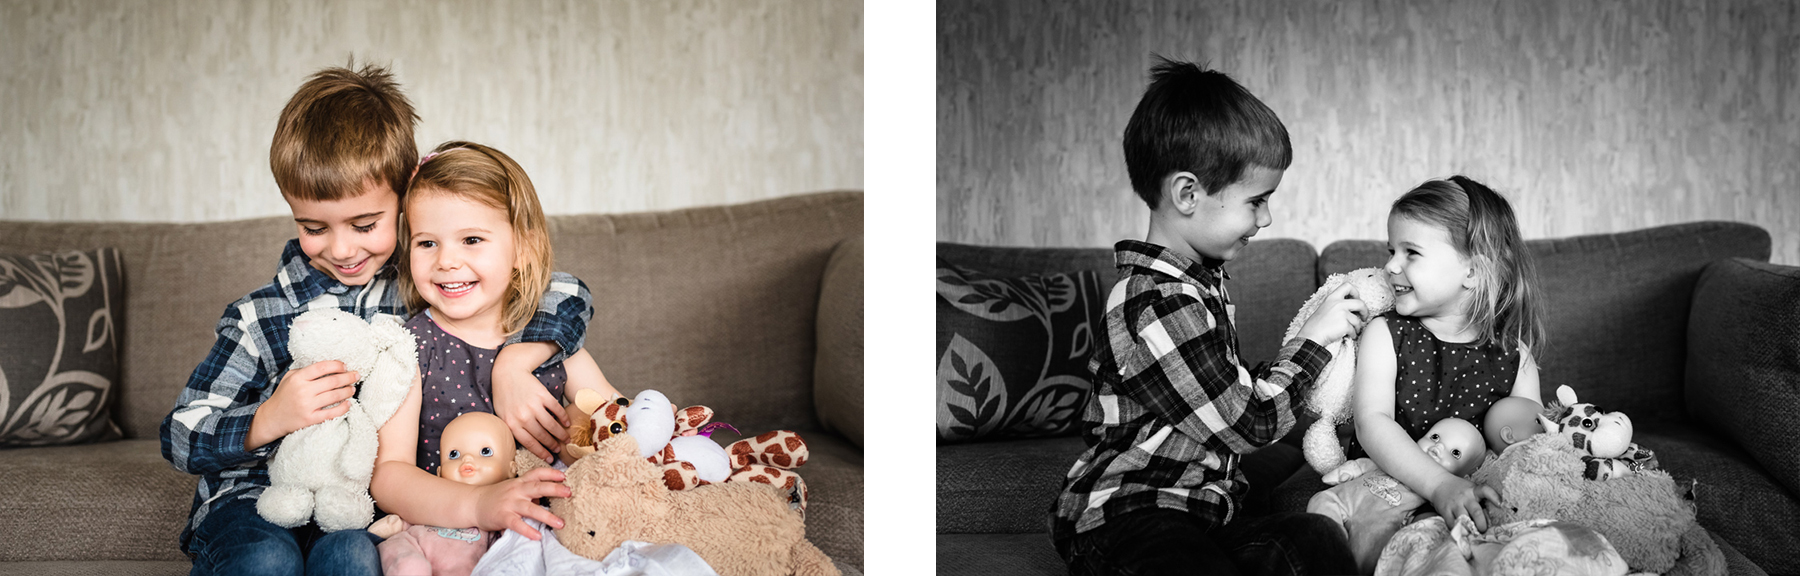 Amersham Buckinghamshire family photographer lifestyle indoor outdoor